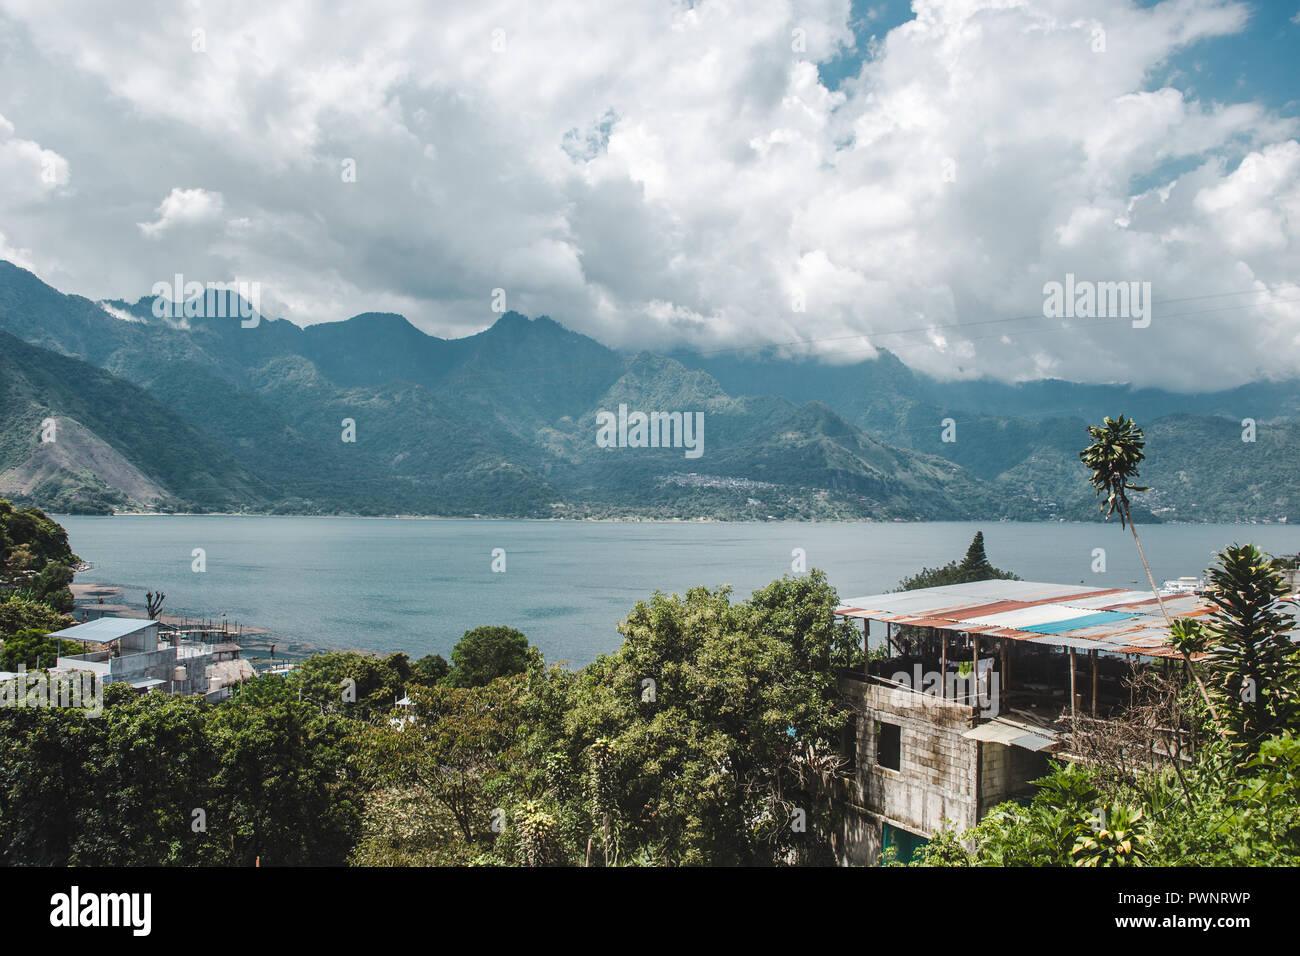 View over the lush and blue landscape around Lake Atitlán, Guatemala - Stock Image